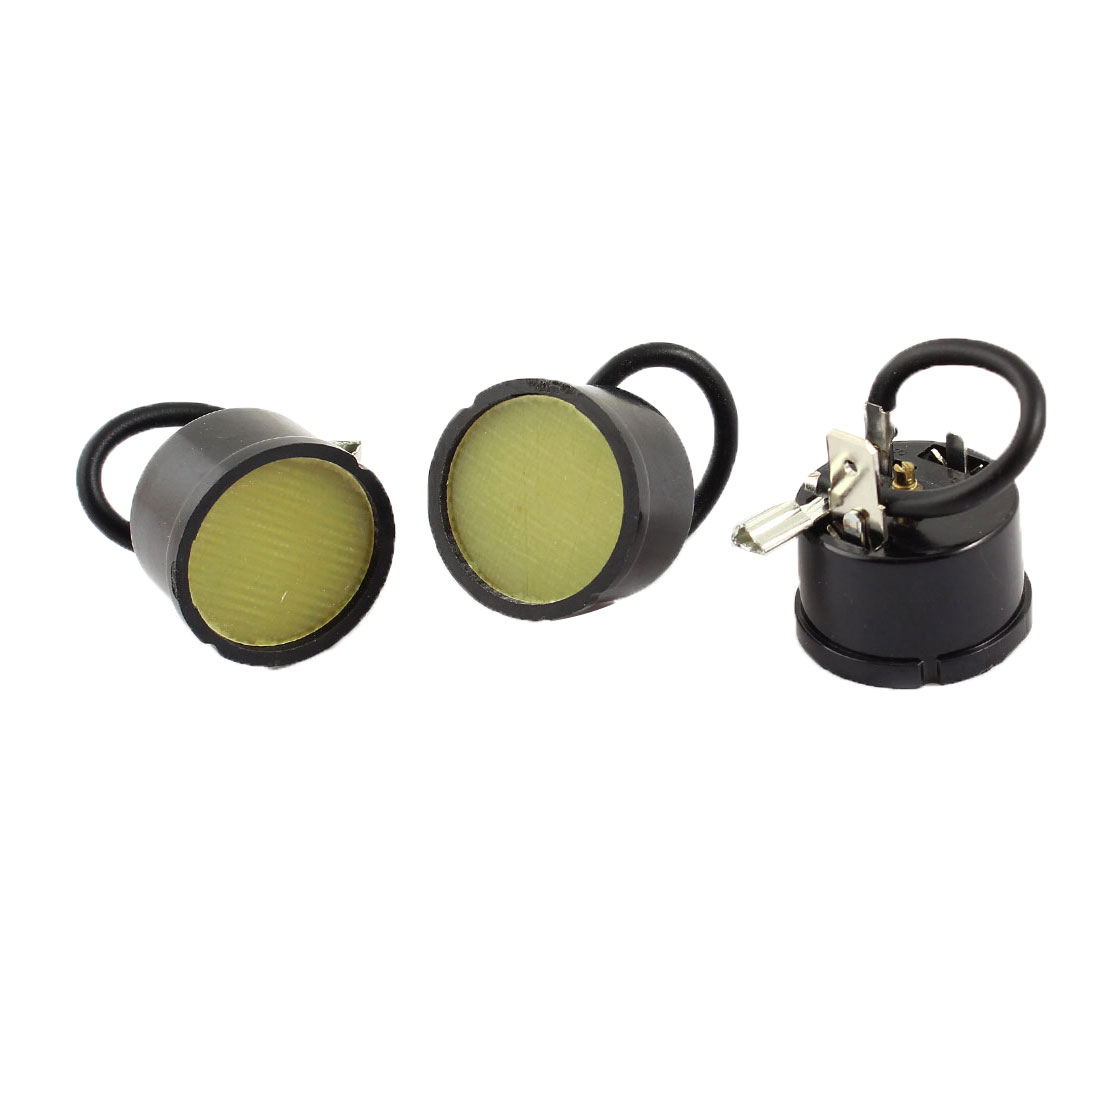 3pcs Round Shell Overload Thermal Protector Relay Starter for 1/5HP Fridge